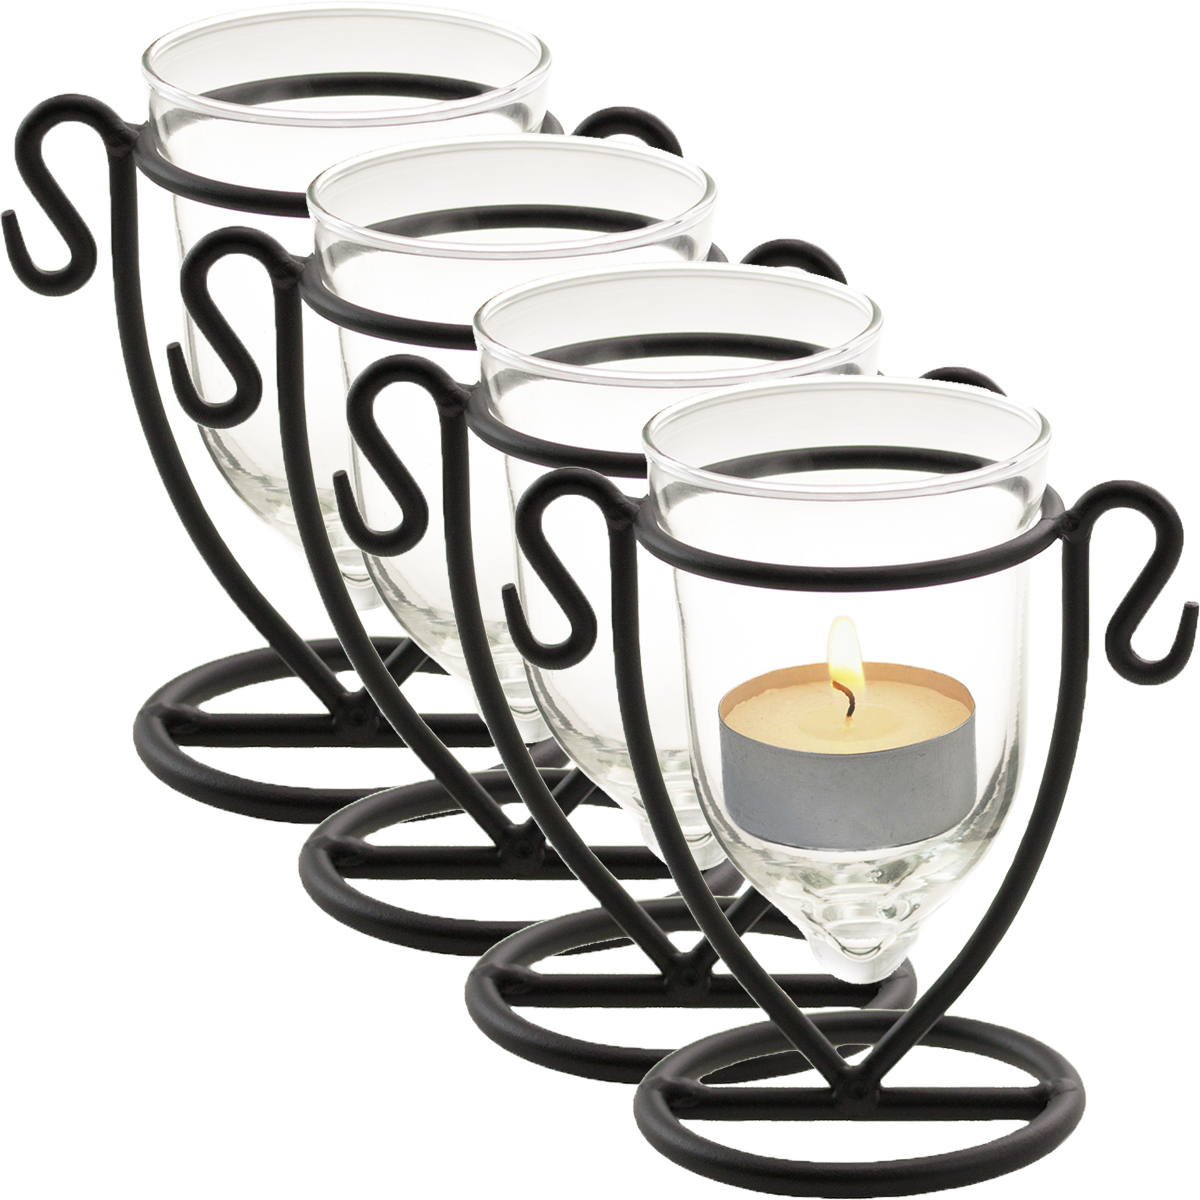 4 Domistyle Chateau Glass Tealight Candle Holder Set Black Metal Glass Tea Light by